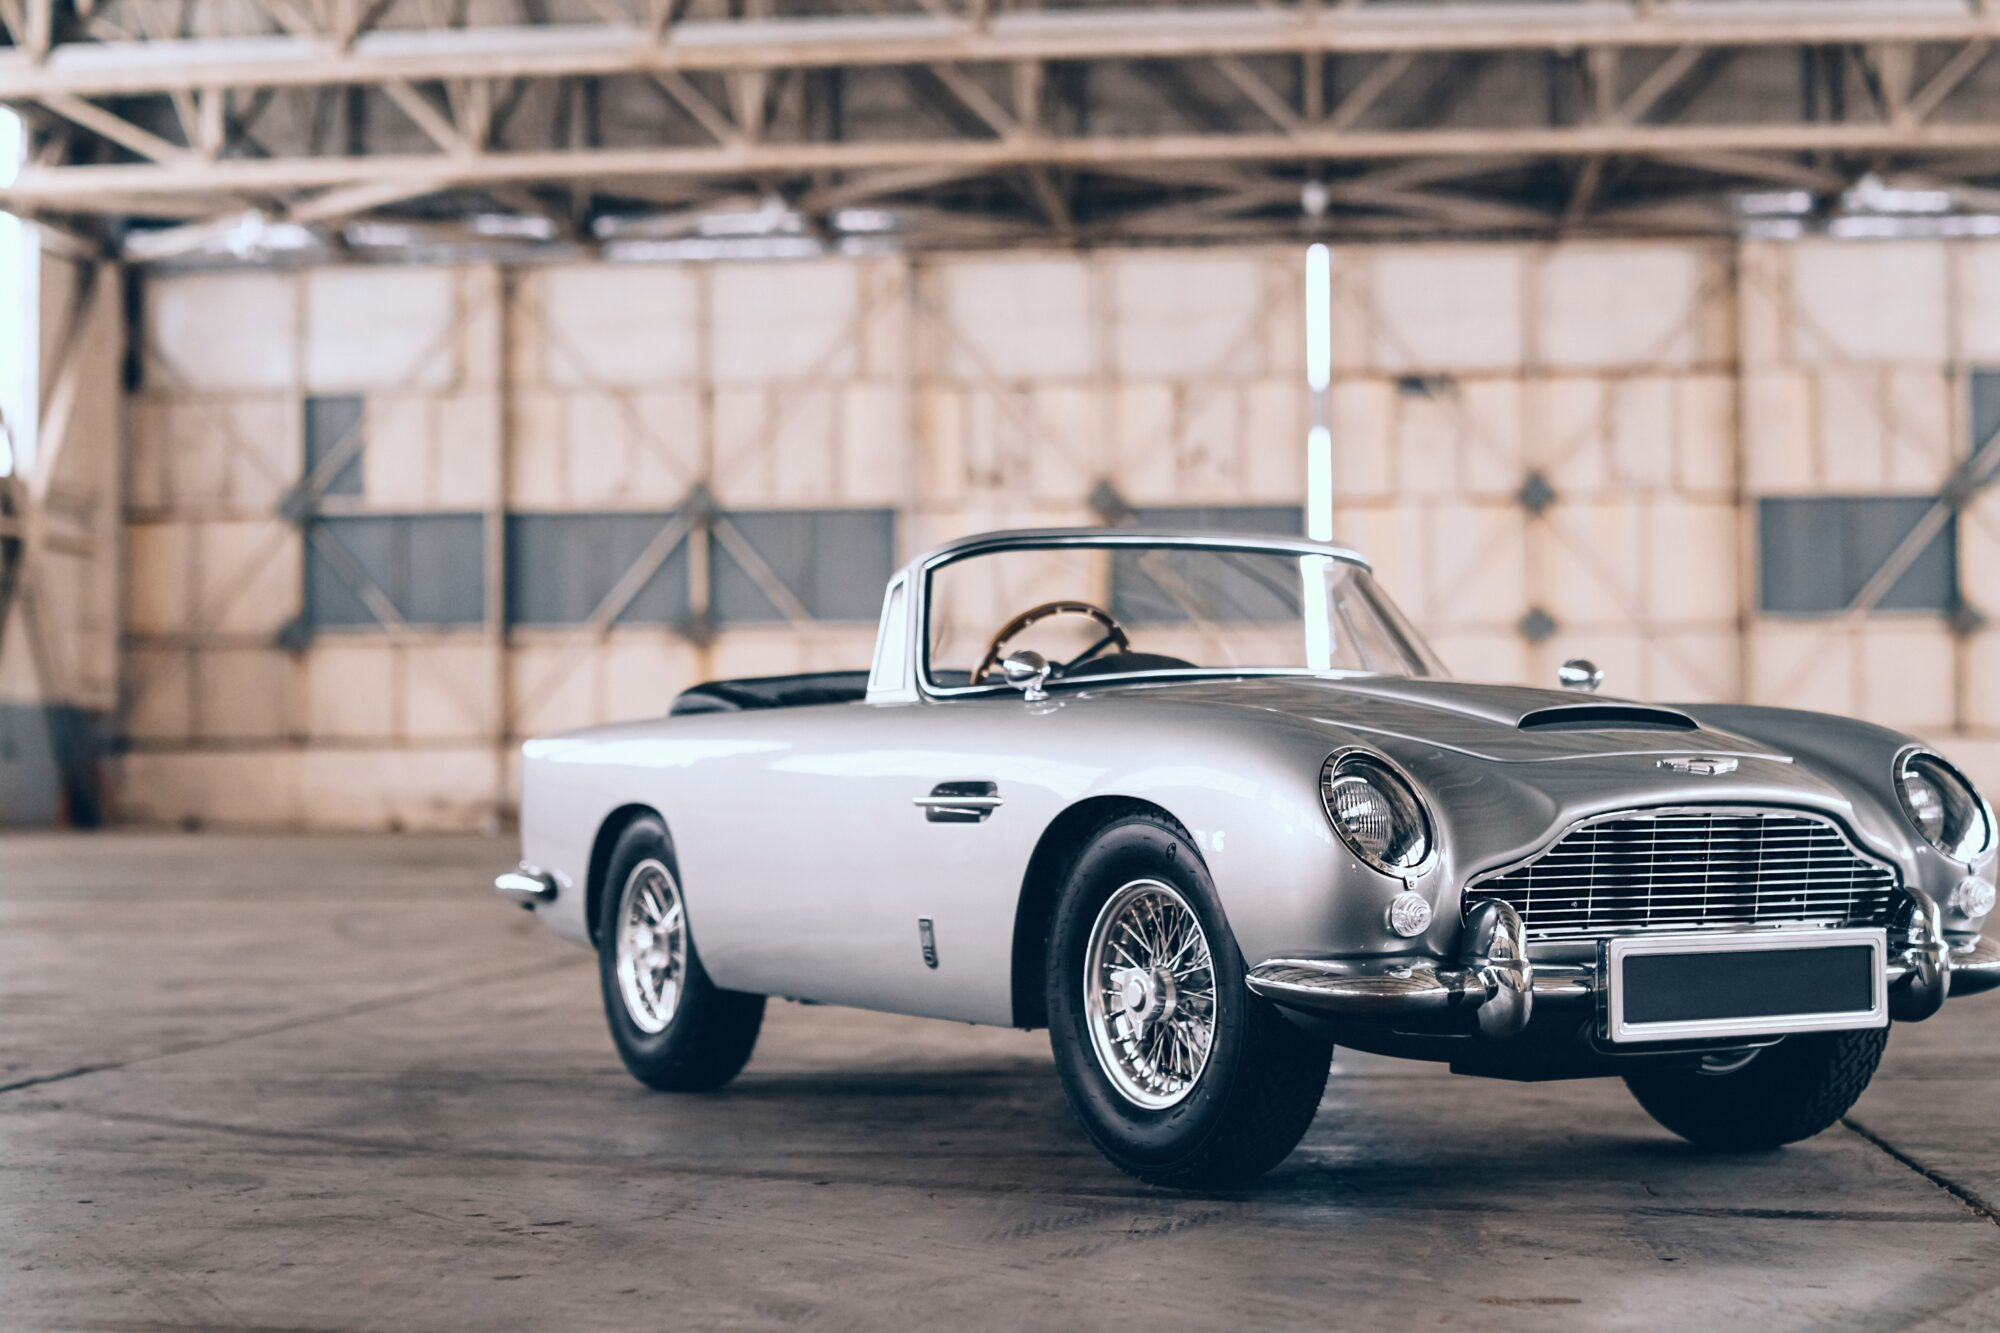 No time for the battery to die: Bond's Aston Martin goes electric